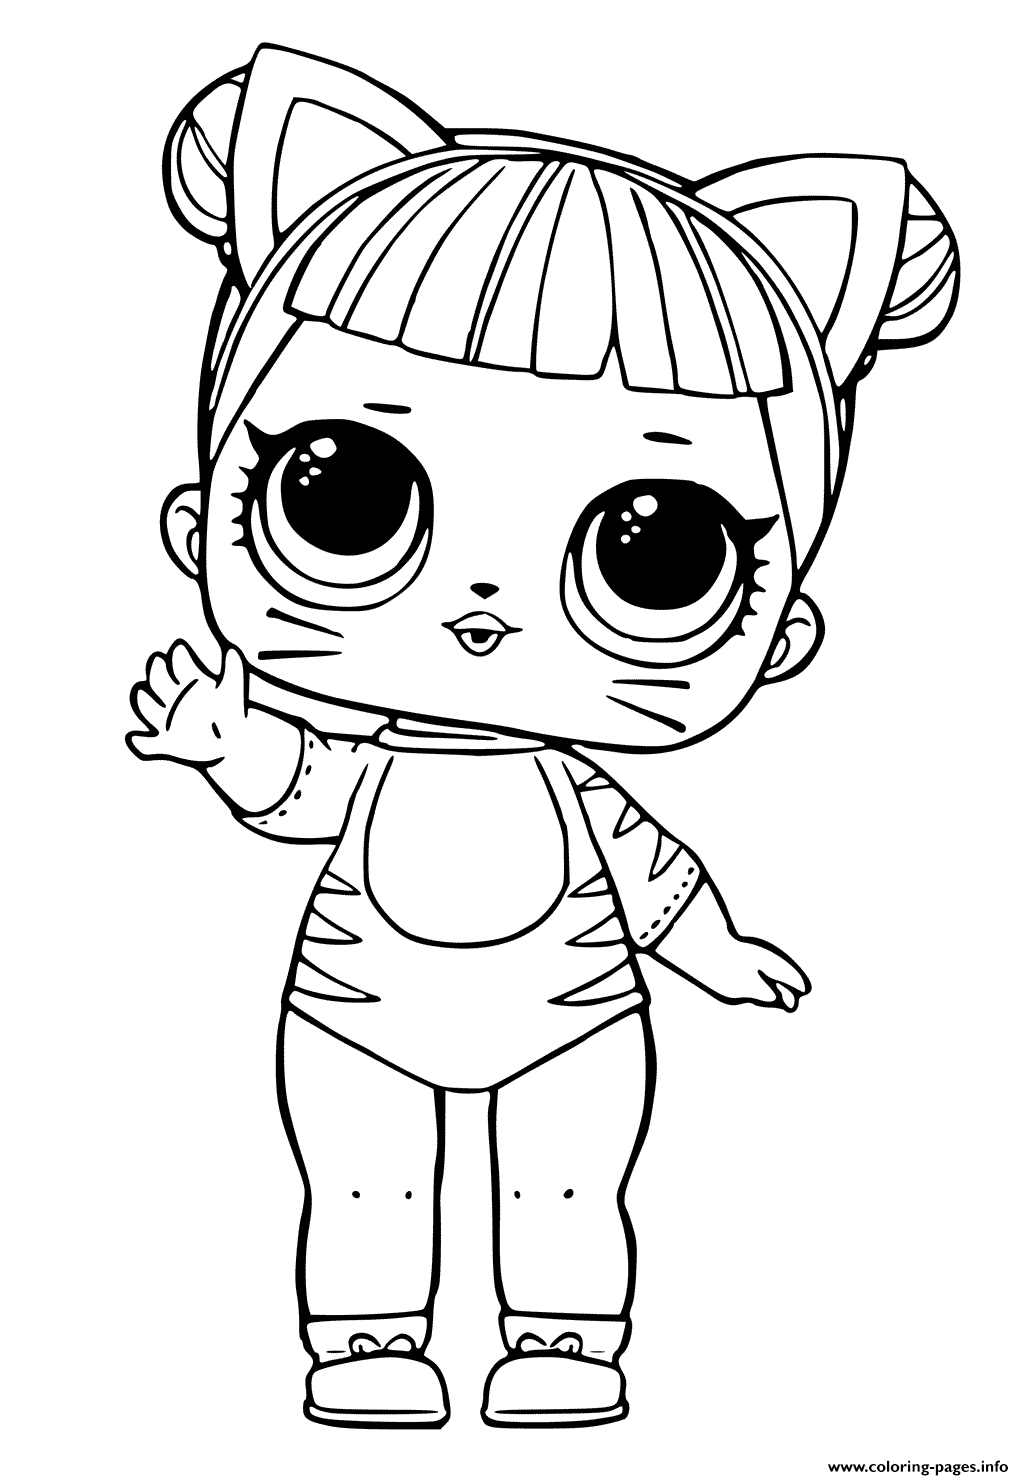 print lol doll tiger cat cute coloring pages coloring book cute coloring pages lol dolls. Black Bedroom Furniture Sets. Home Design Ideas